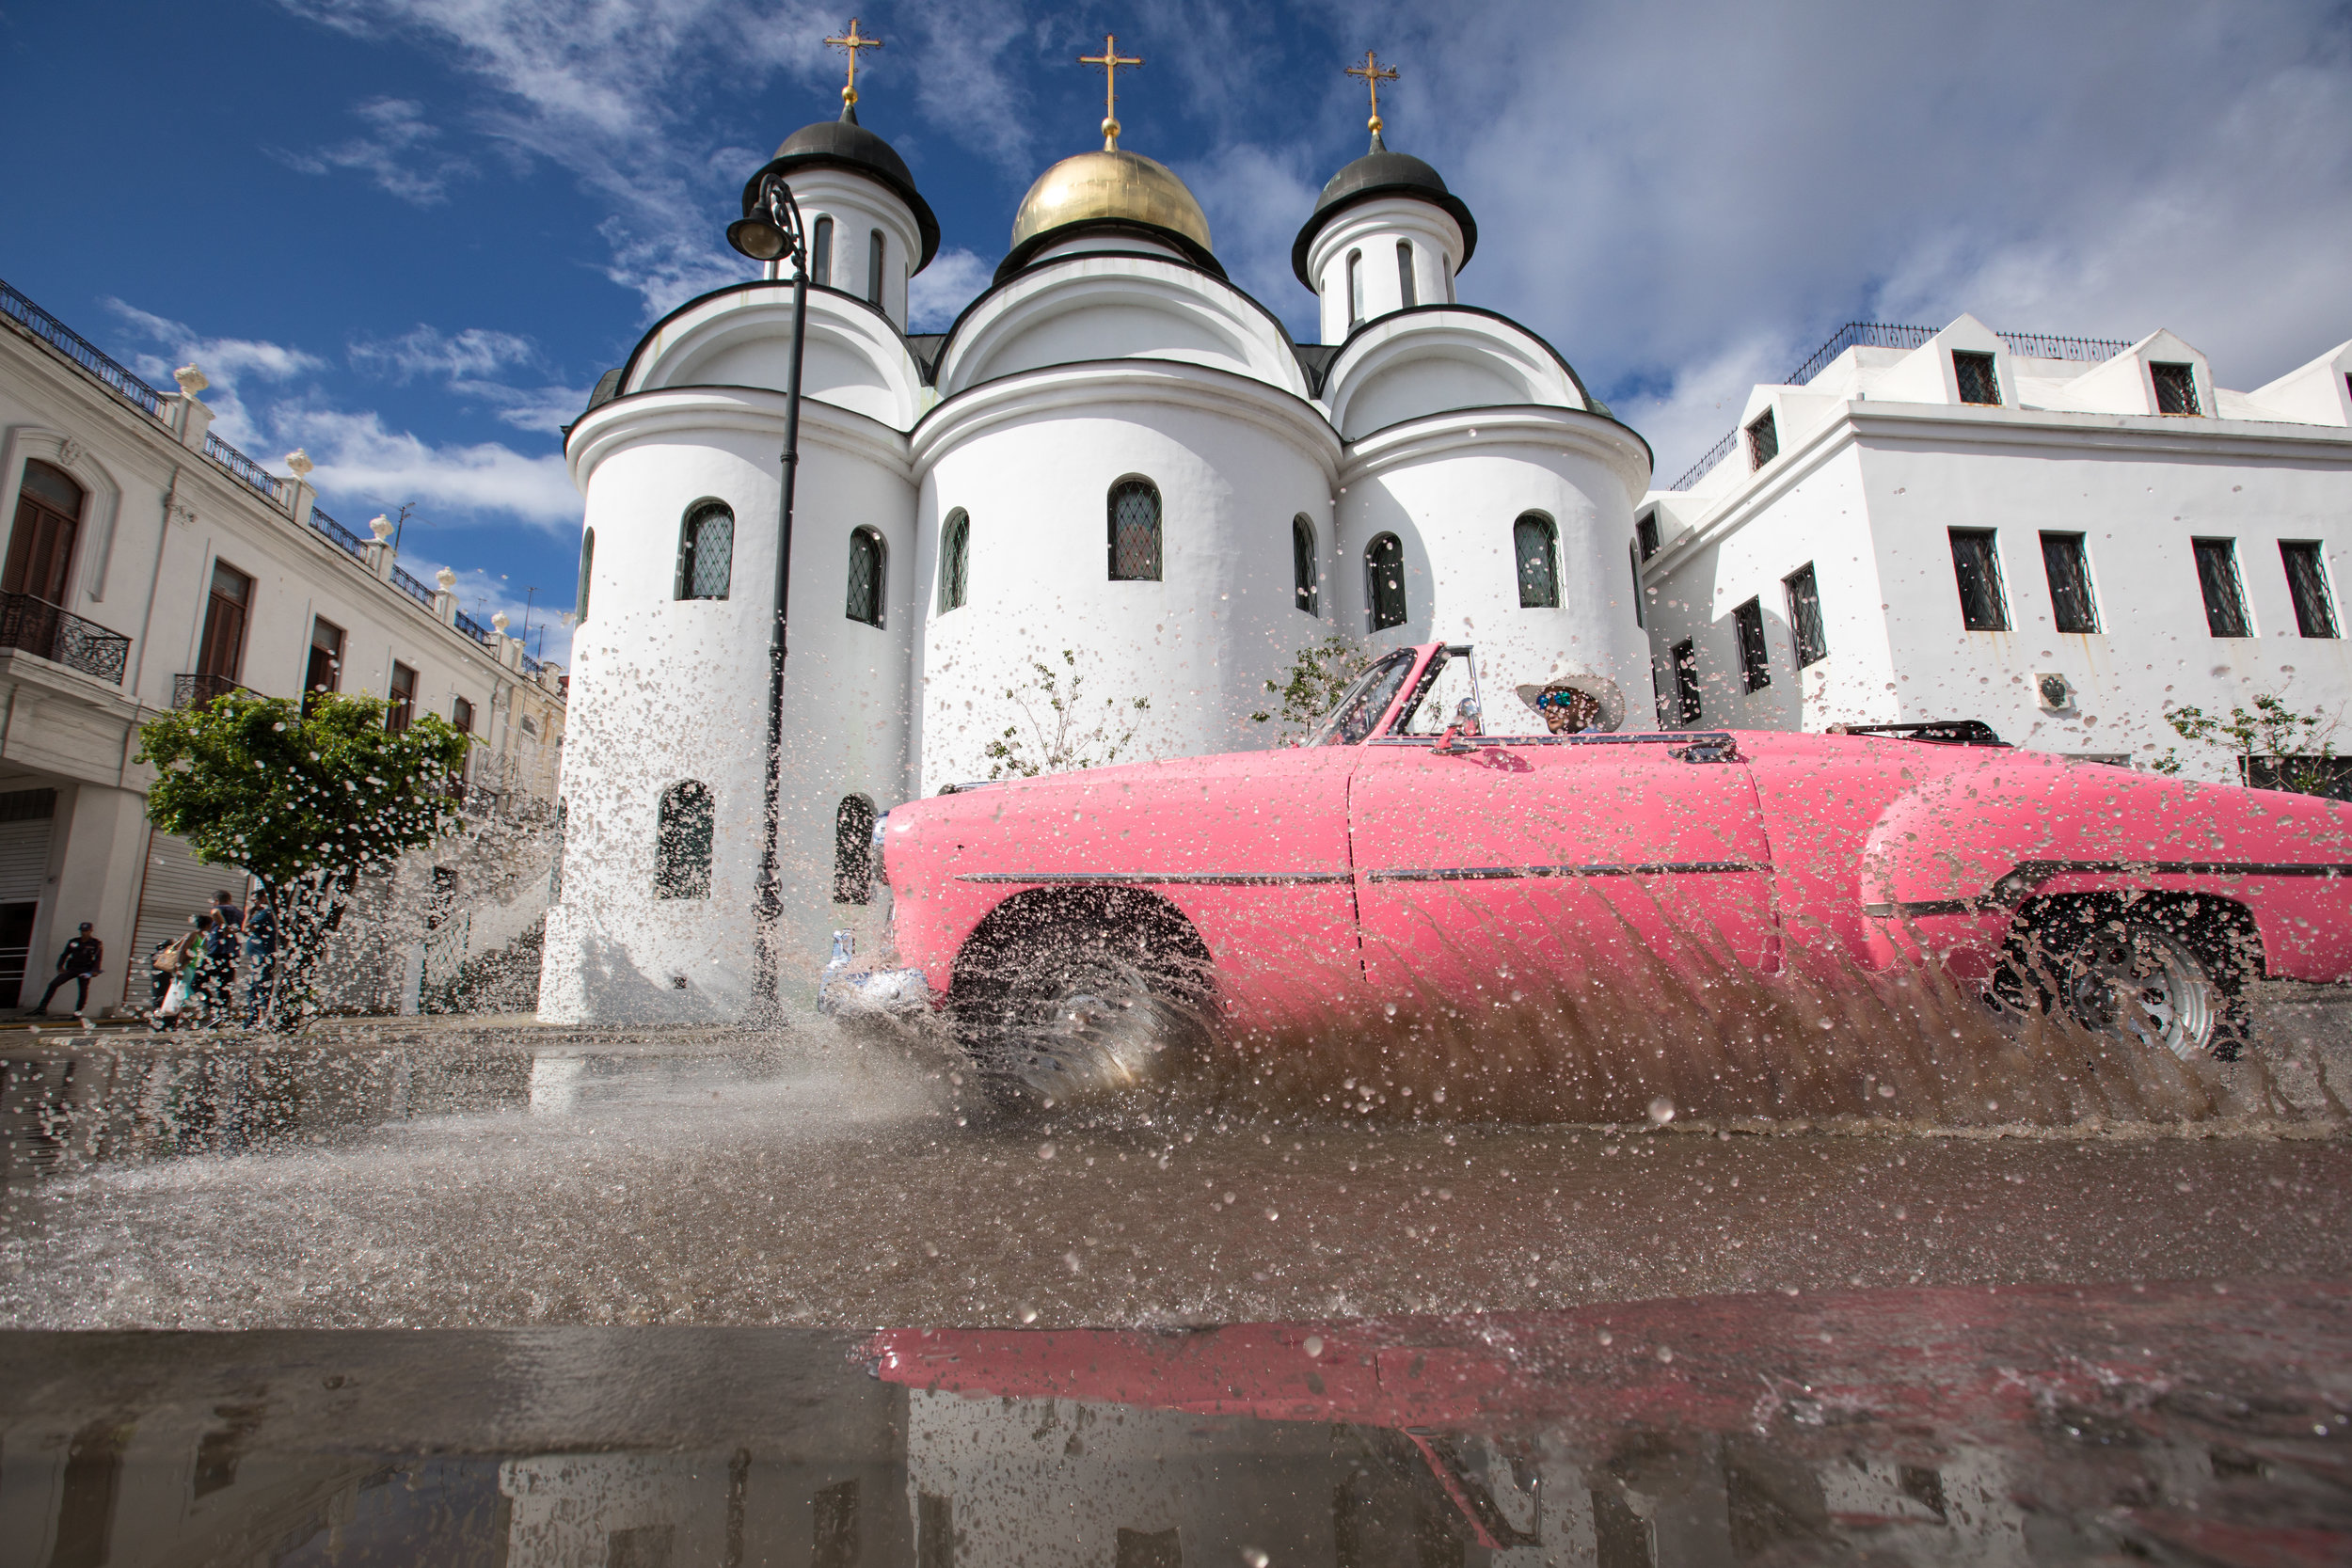 1.  Classic pink car in front of an orthodox church in Havana, the capital of Cuba.